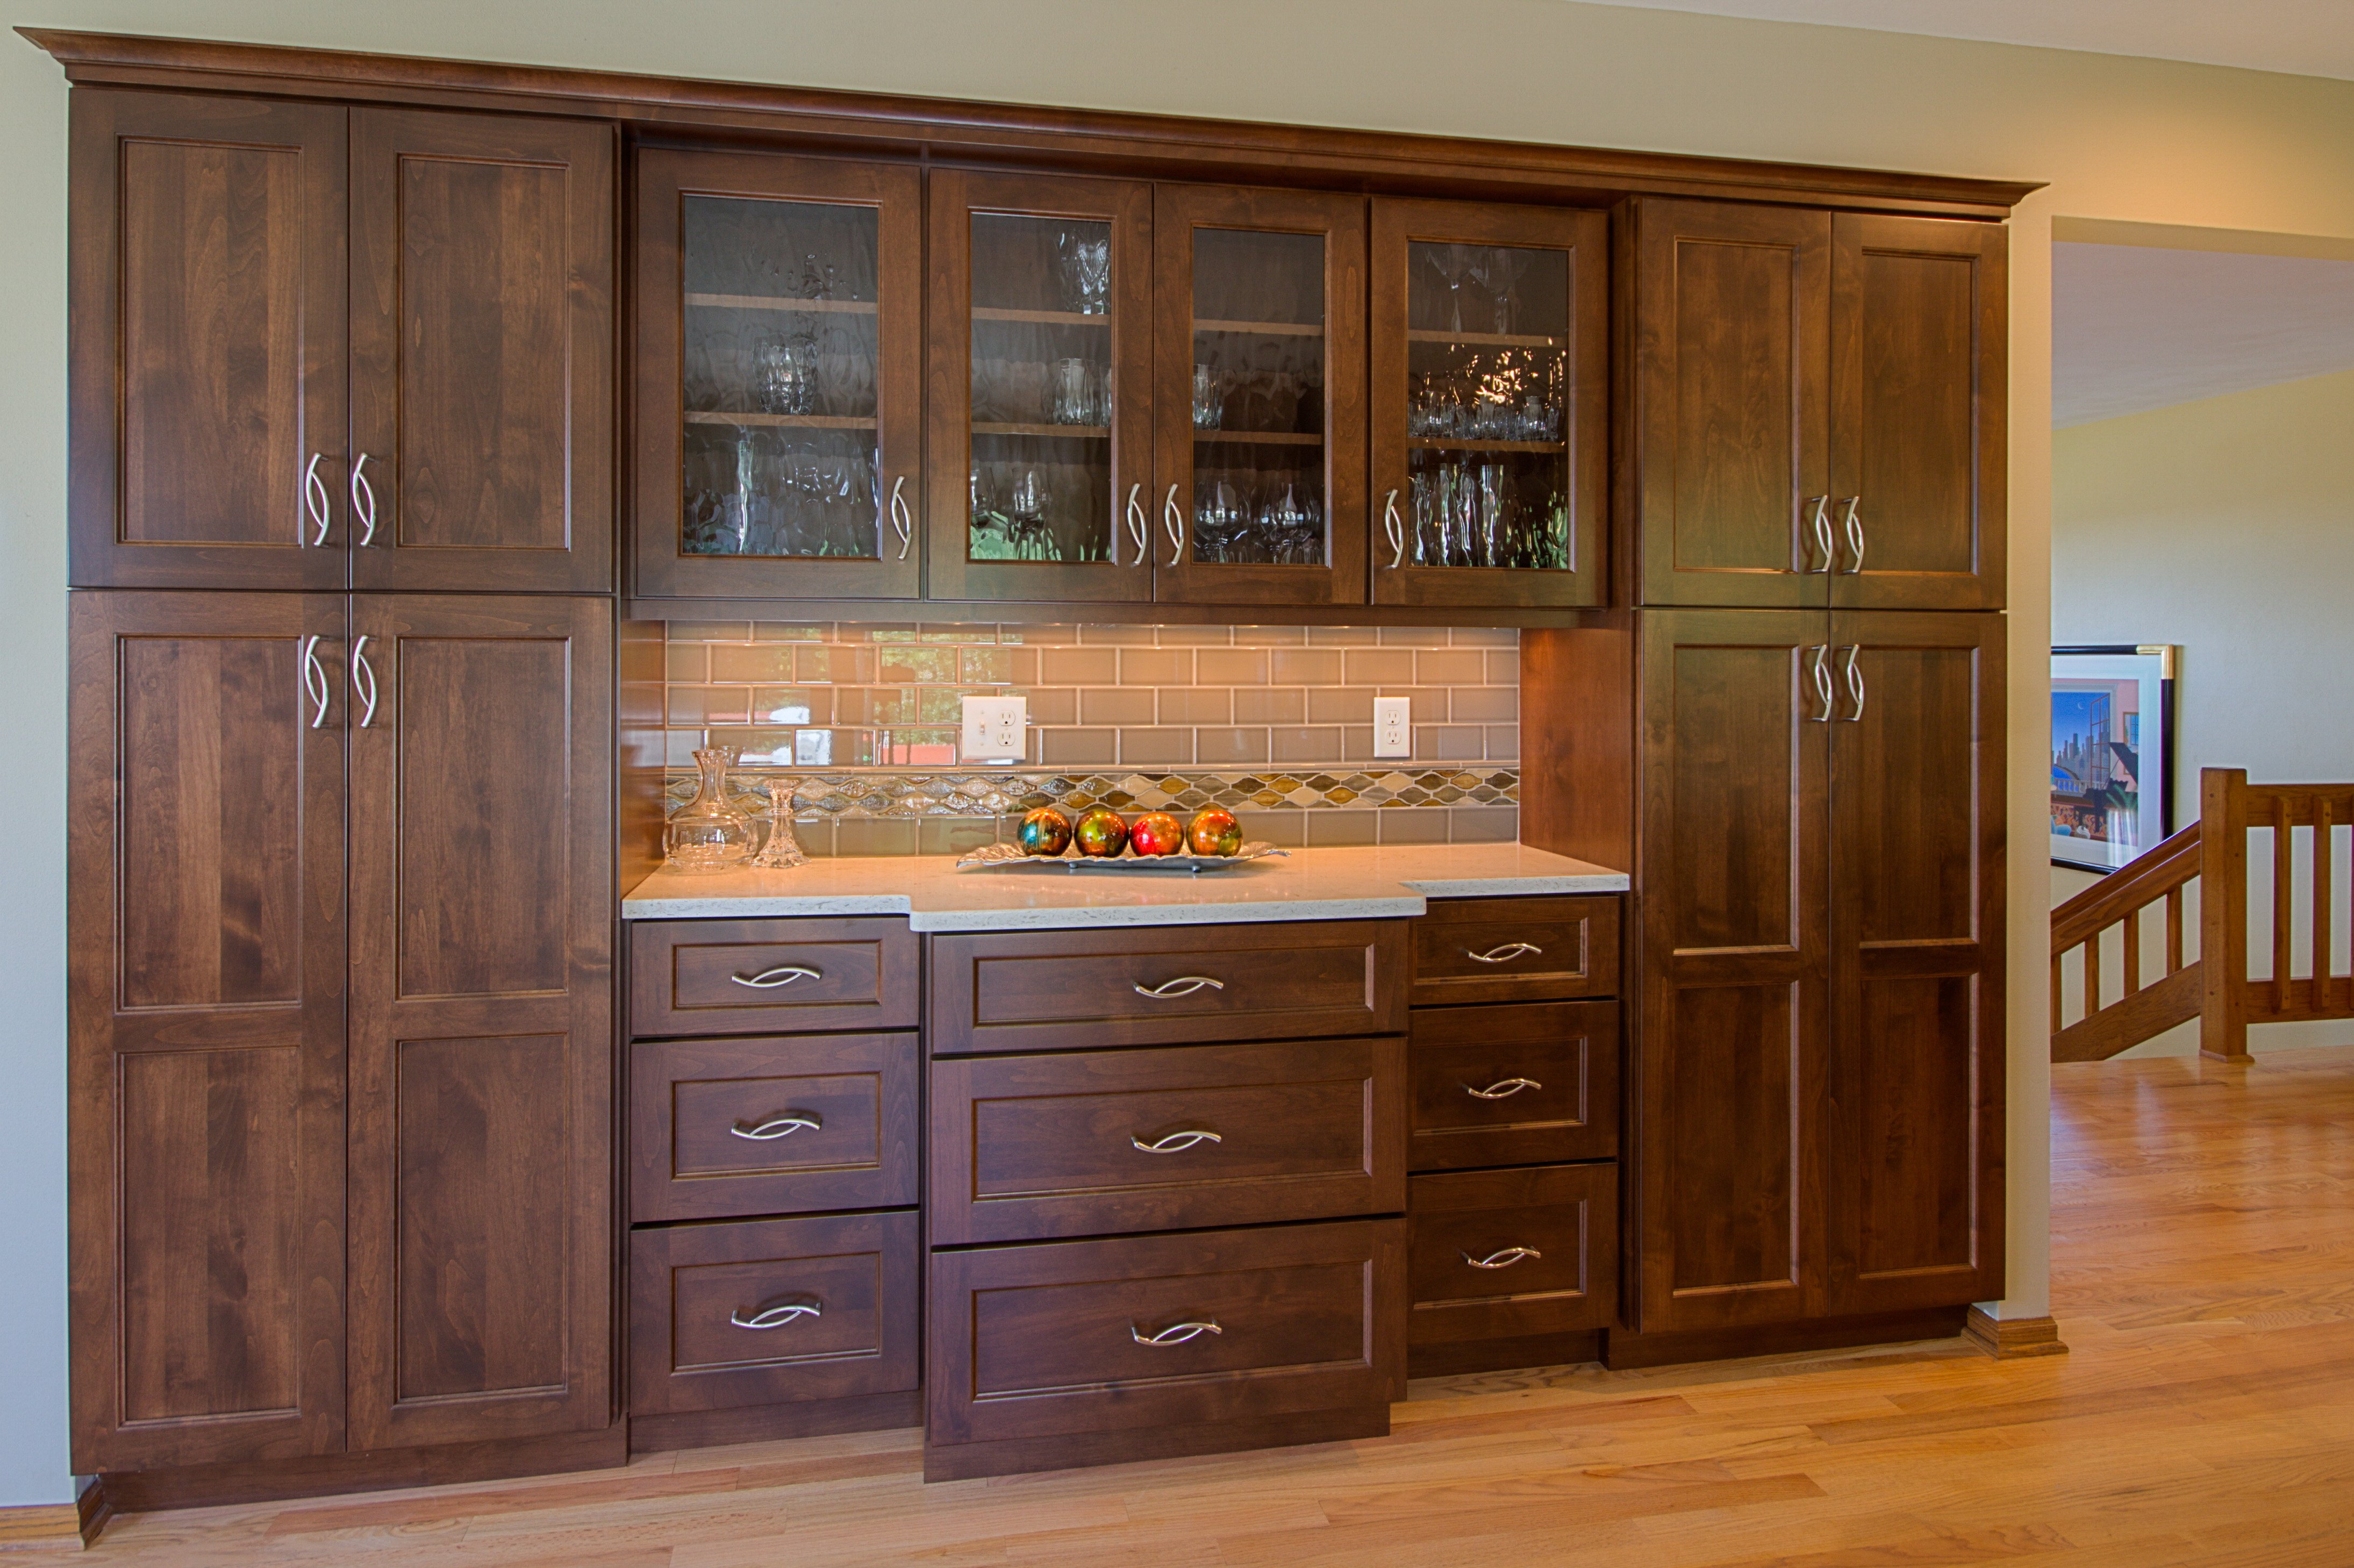 Kitchen Remodeling and Design, bar cabinets, glass bar cabinets, taupe subway tile, kitchen pantry cabinet,